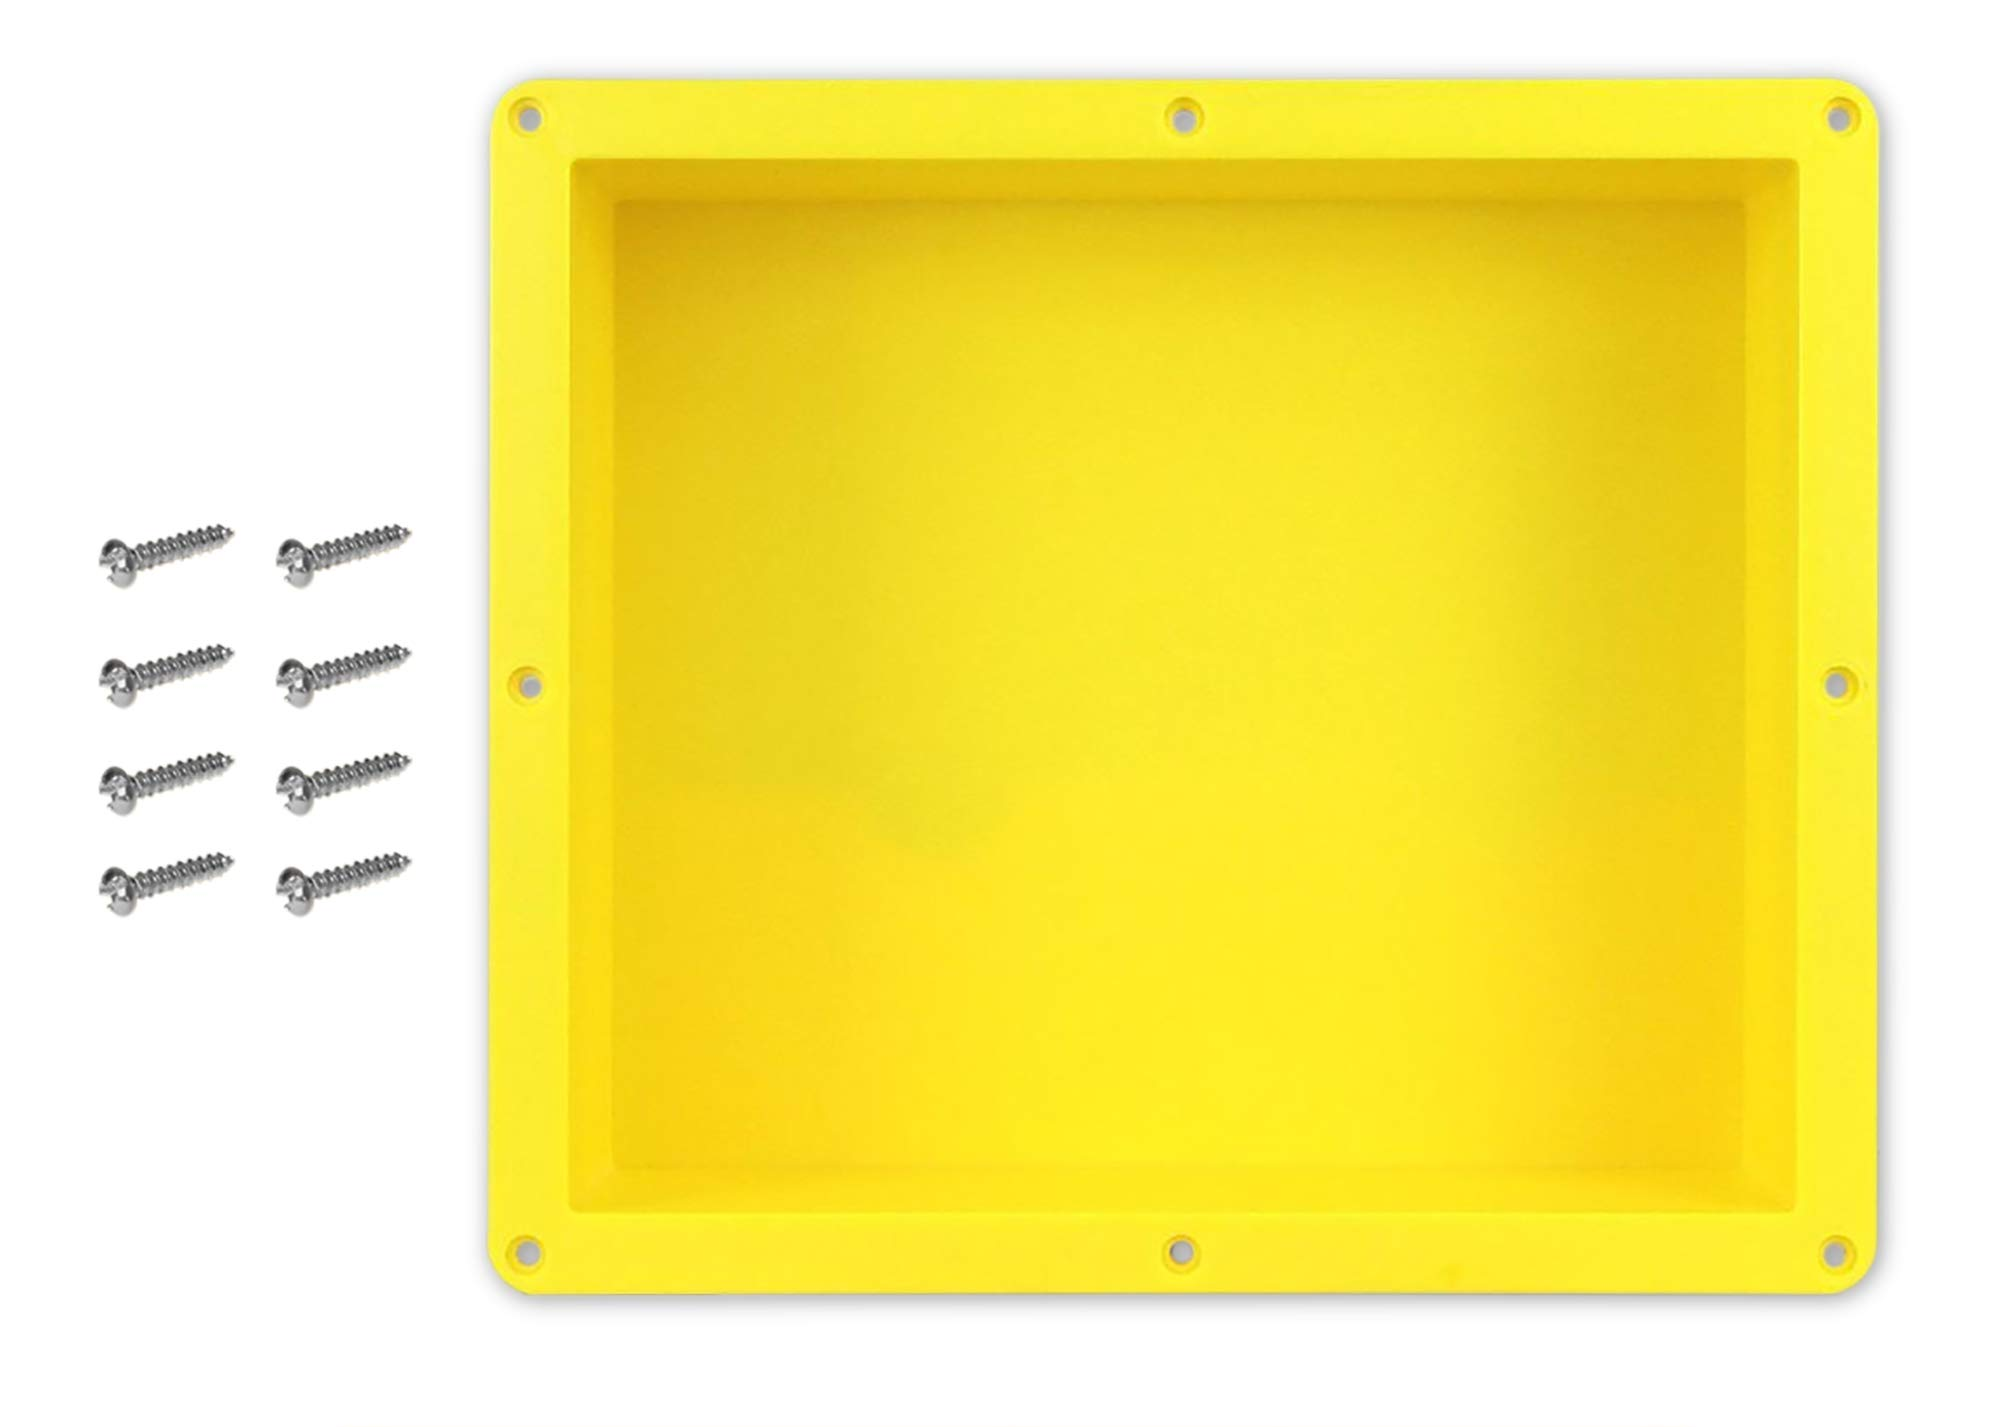 16'' x 14'' Single Shelf Recessed Shower Niche with Mounting Screws included, Mounts Flush with 1/2'' Backerboard, Ready to Tile, Easy to Install and Waterproof, by Novalinea